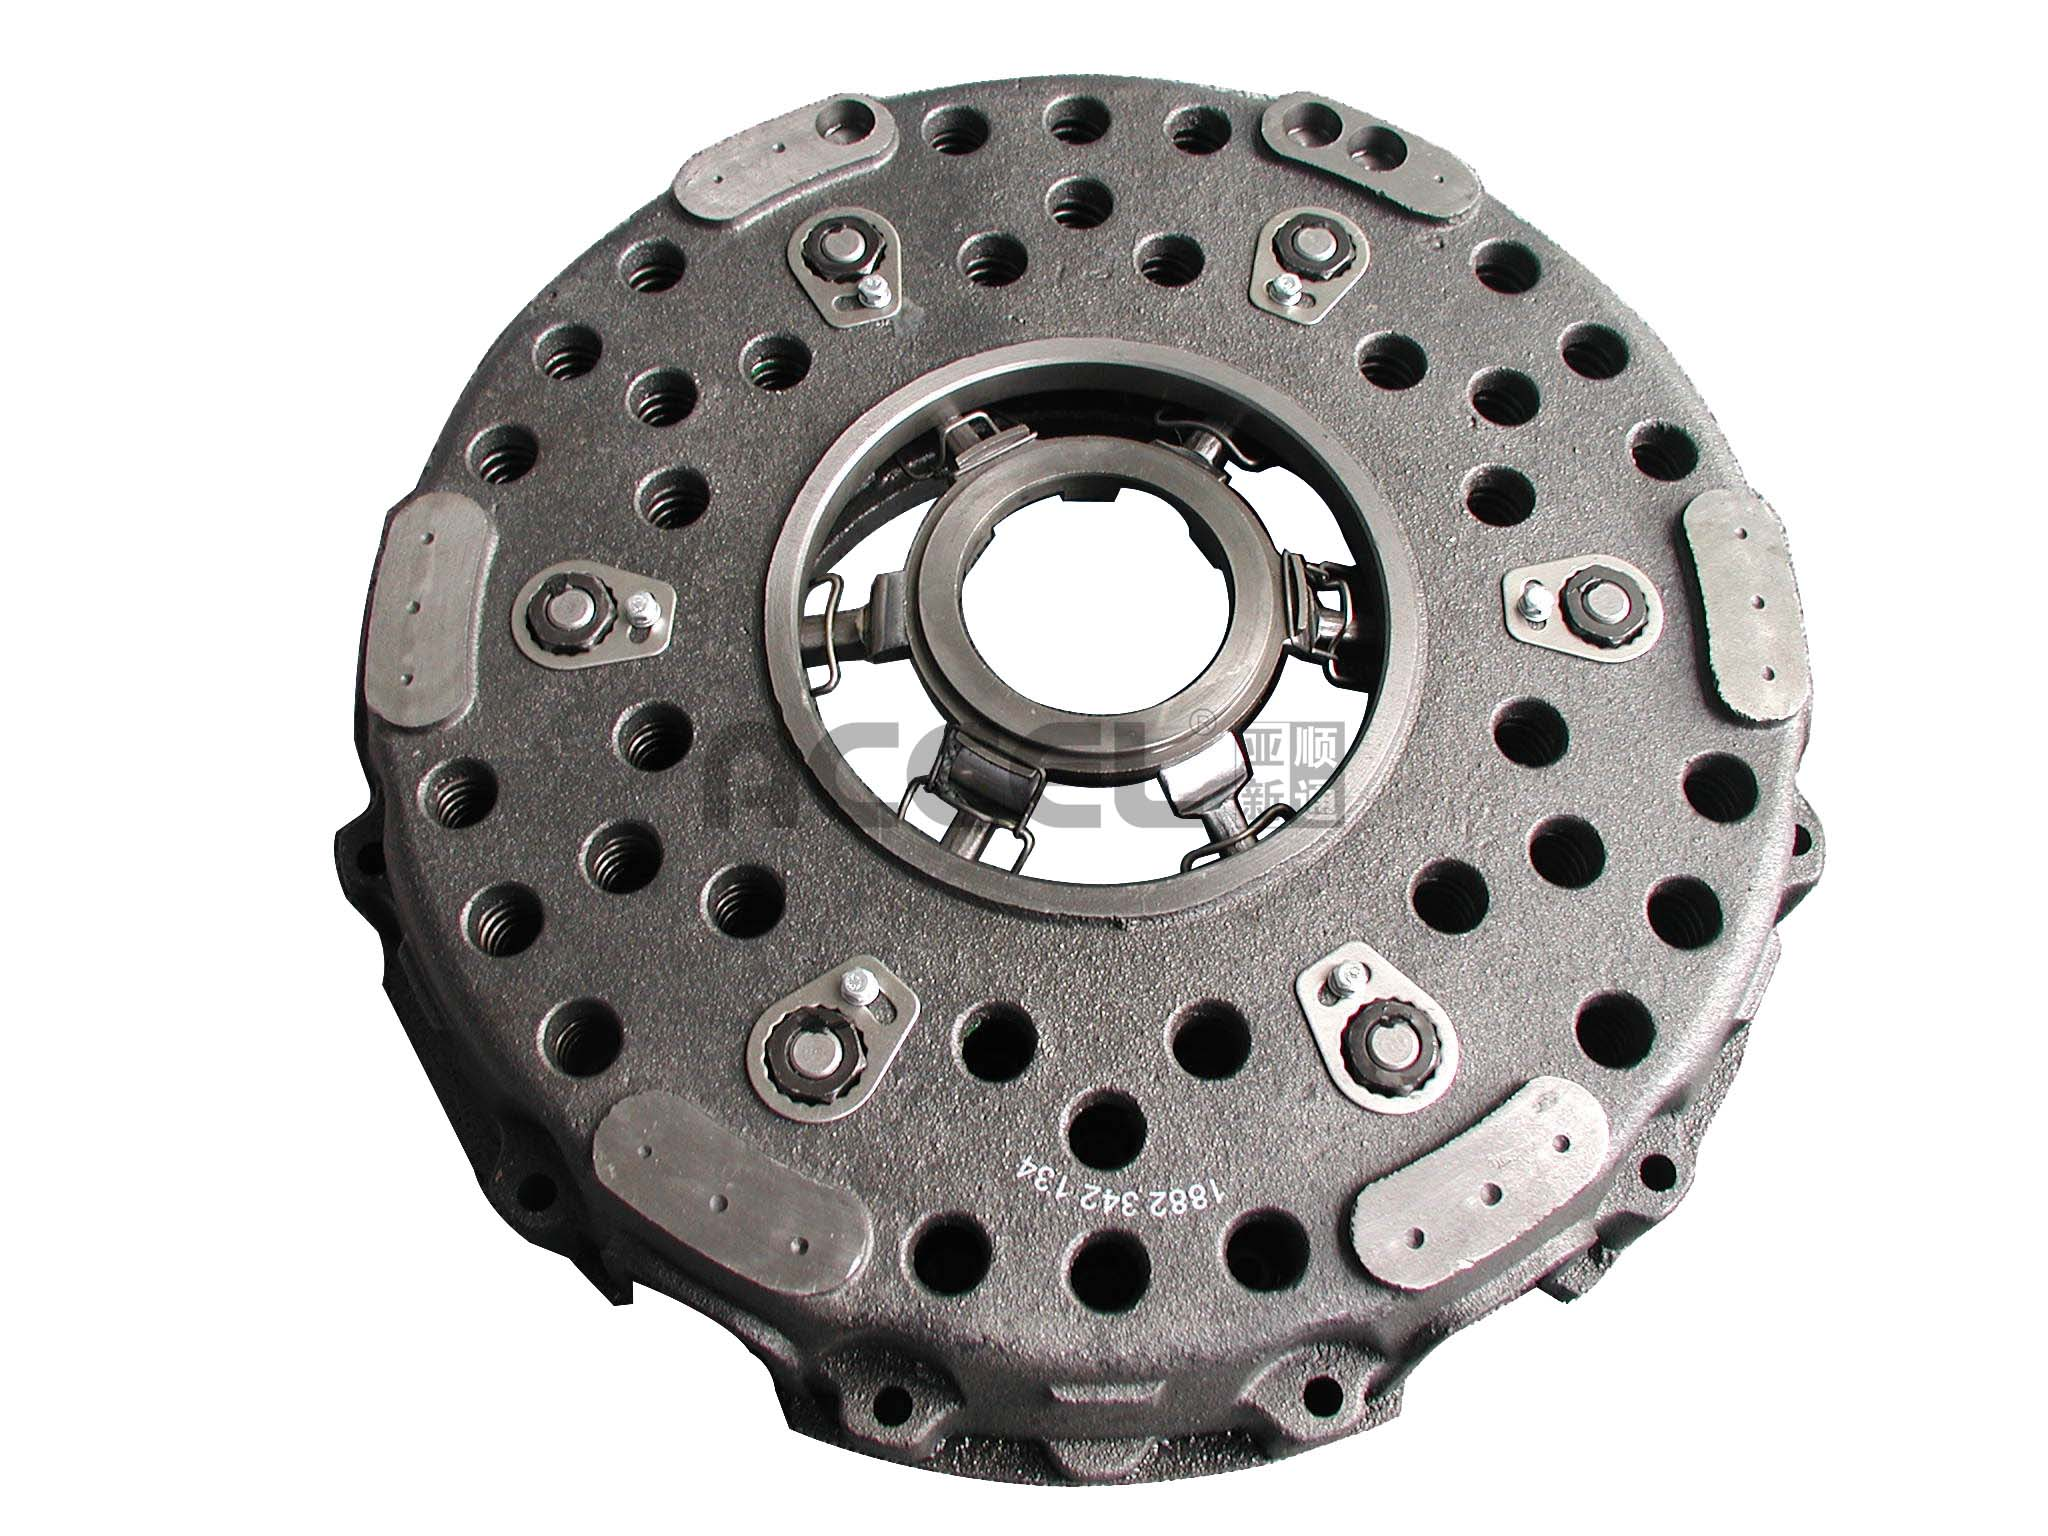 Clutch Cover/OE:003 250 9004